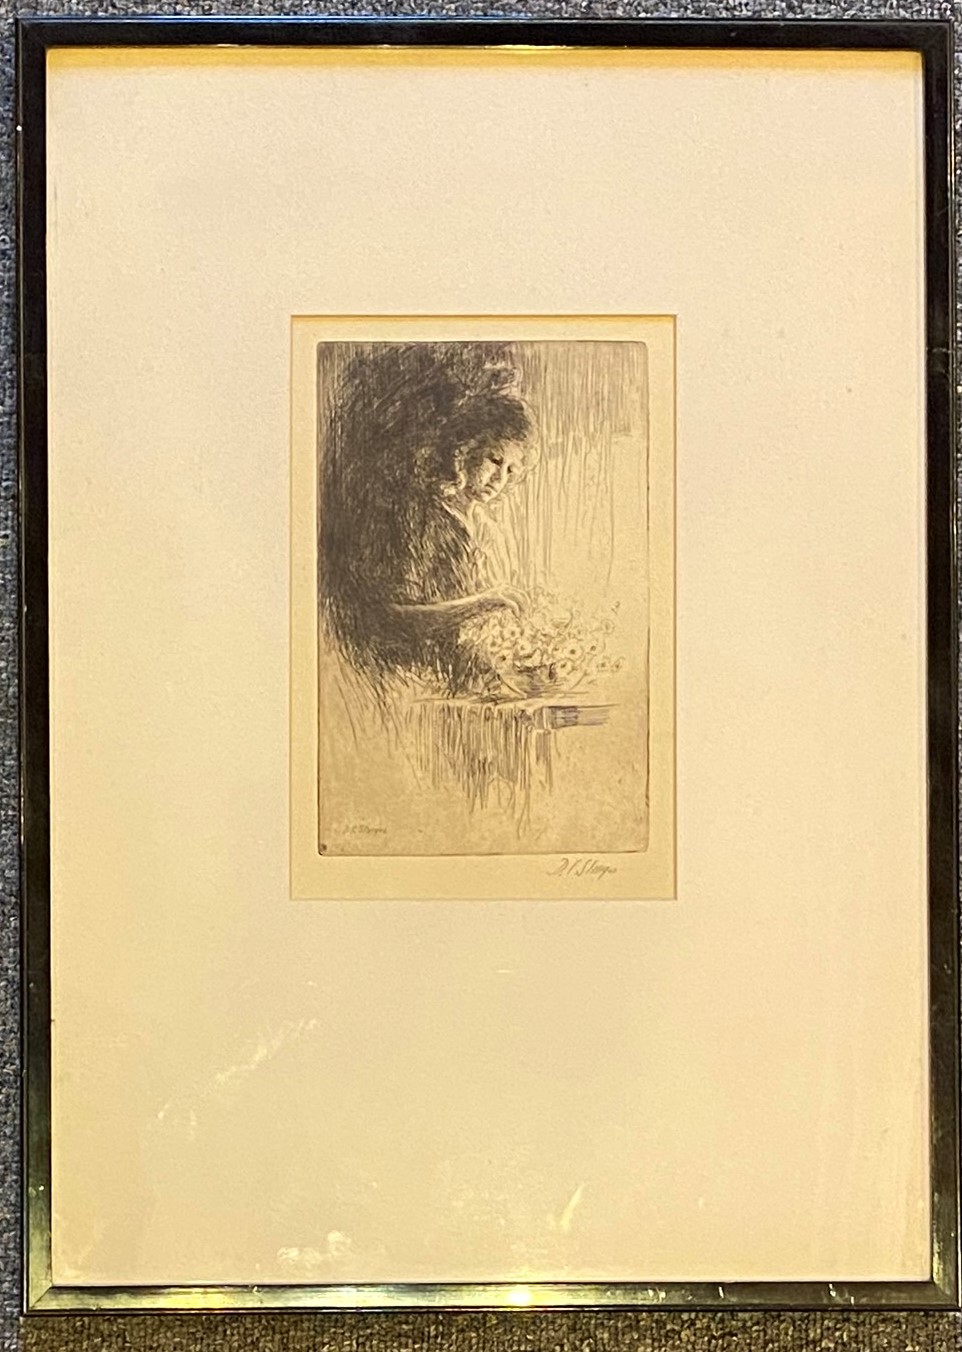 """""""Marguerite"""" by Dwight Case Sturges 1874- 1940 Pencil signed Etching - Image 4 of 4"""